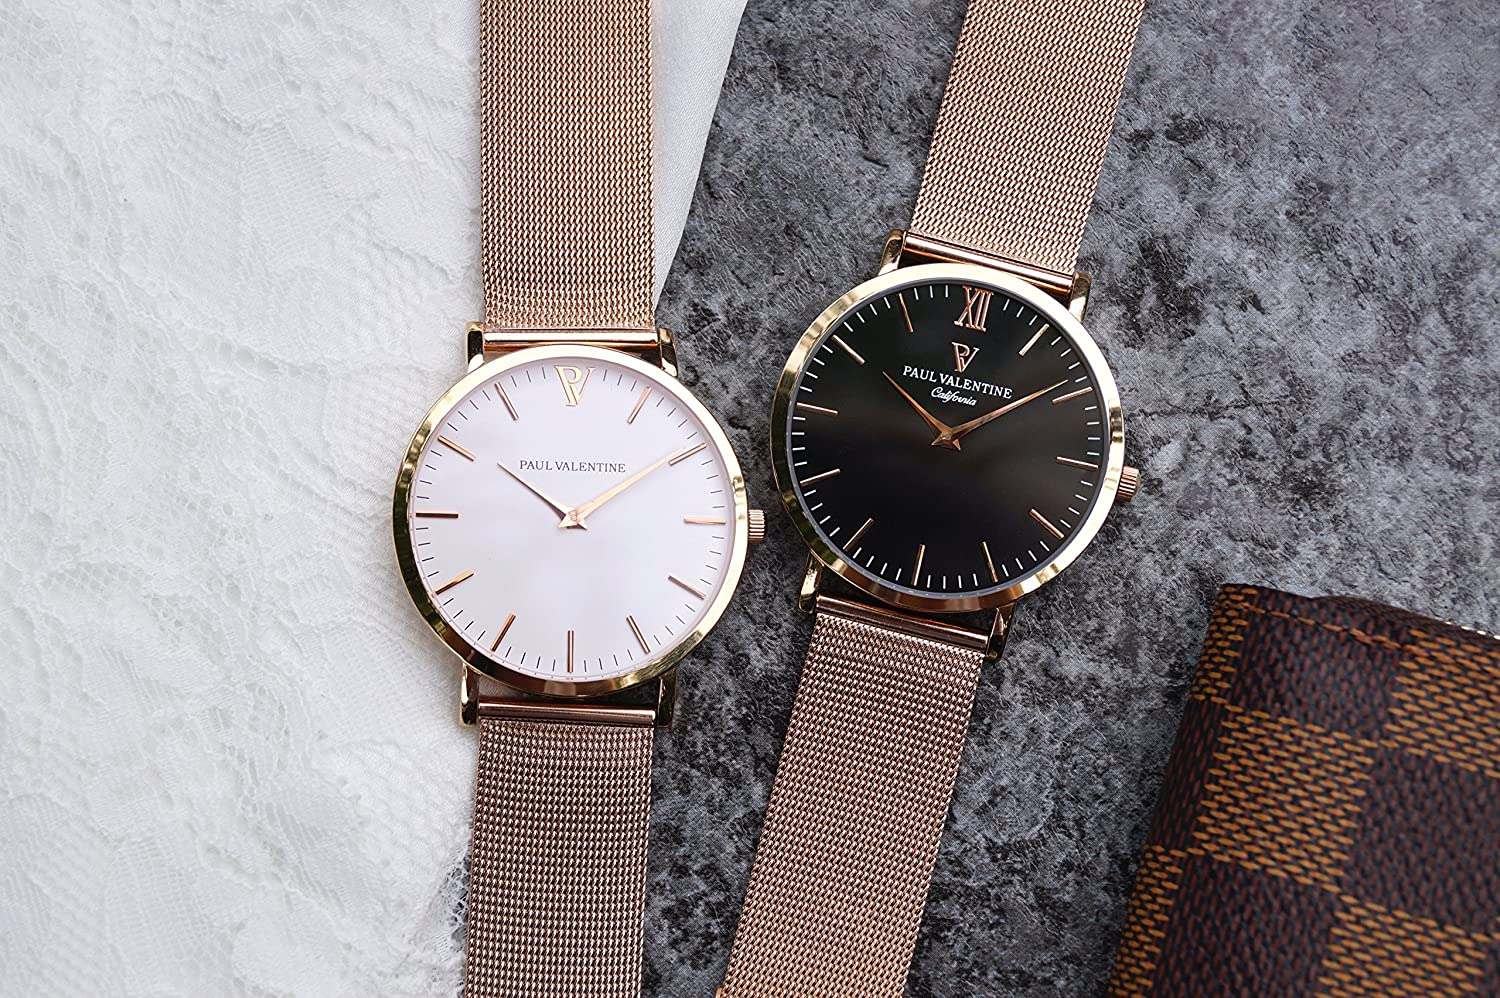 8f96fc521 Paul Valentine coffee Watches in 2019 t Watches